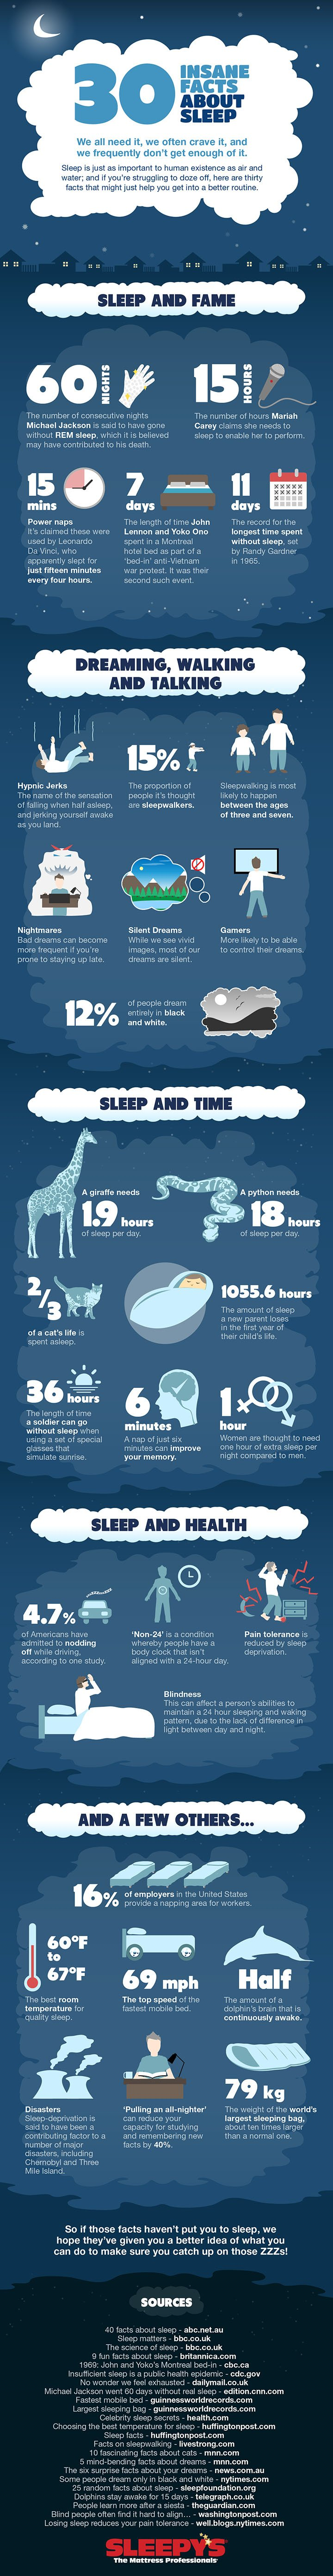 1330 Insane Facts about Sleep